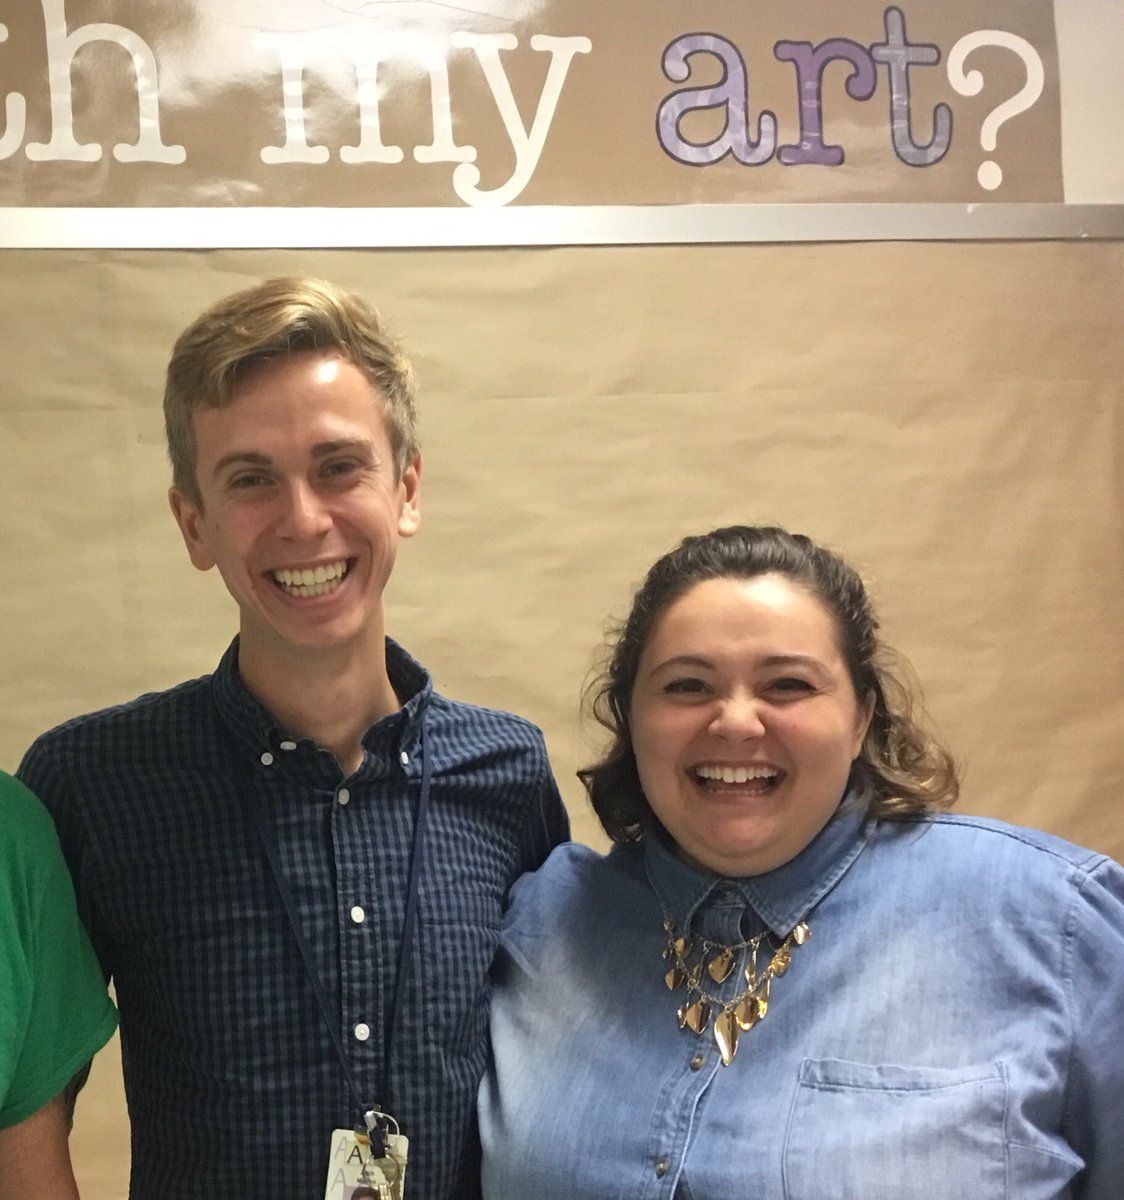 Applause for Oakridge music teachers ,McKenzie Sterner and and Zach Martini, who successfully attained a grant to purchase 30 ukuleles for integration in the 5th grade music curriculum at Oakridge! ⁦<a target='_blank' href='http://twitter.com/APSArts'>@APSArts</a>⁩ ⁦<a target='_blank' href='http://twitter.com/APSVirginia'>@APSVirginia</a>⁩ <a target='_blank' href='http://search.twitter.com/search?q=APSArtsGreat'><a target='_blank' href='https://twitter.com/hashtag/APSArtsGreat?src=hash'>#APSArtsGreat</a></a> <a target='_blank' href='https://t.co/98vBIaB6JP'>https://t.co/98vBIaB6JP</a>